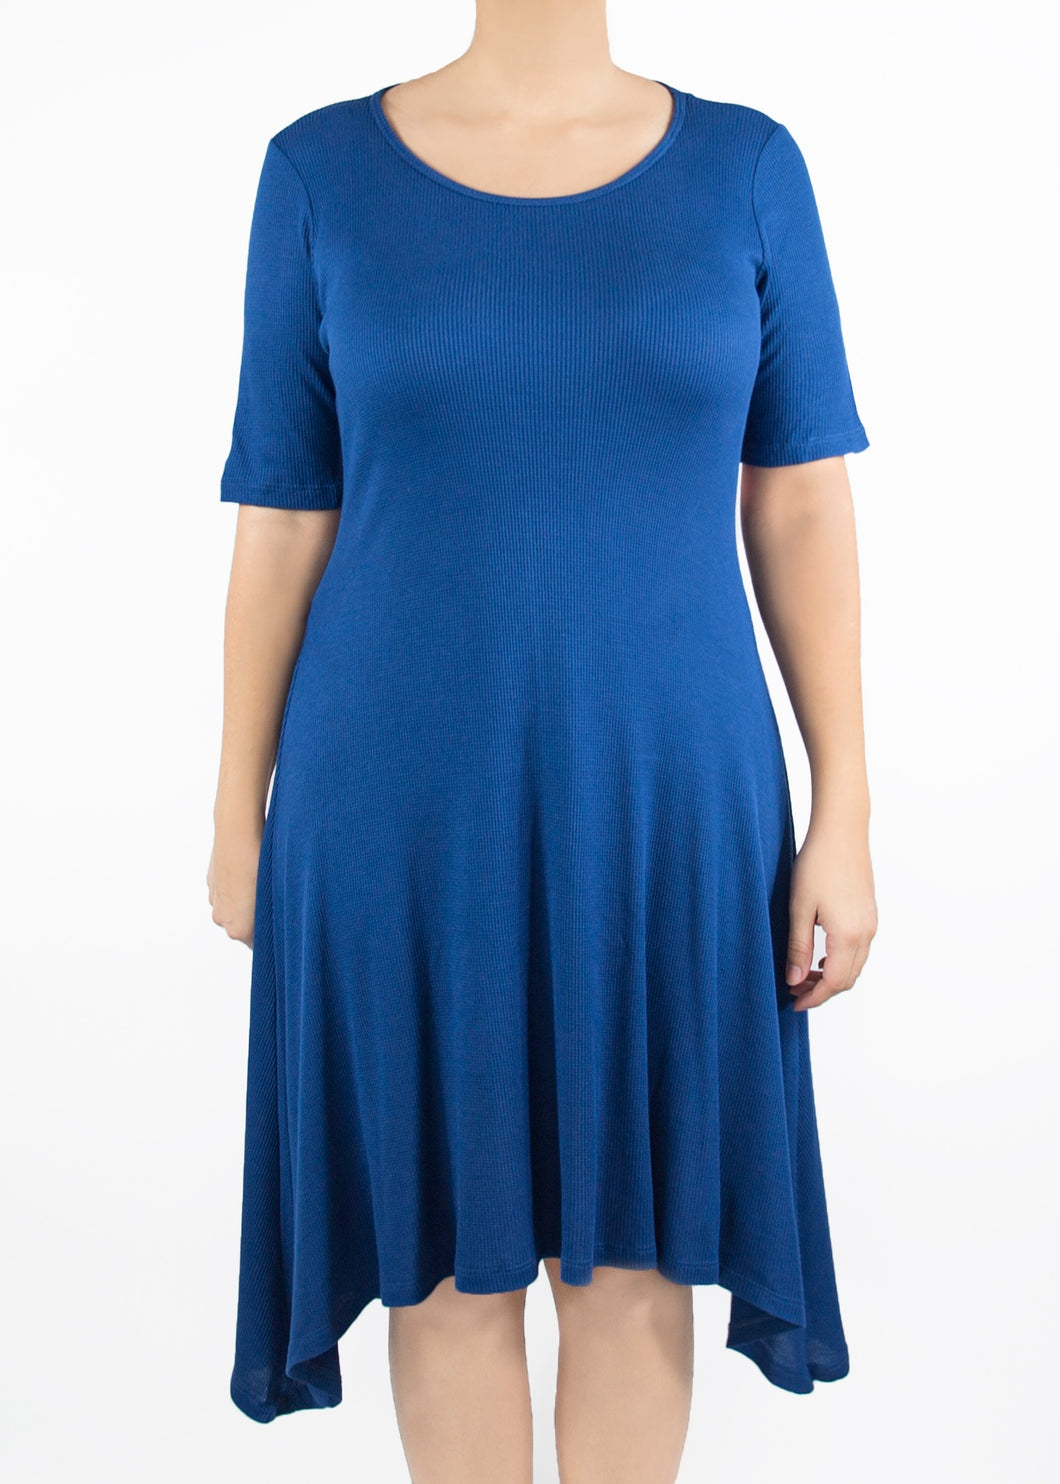 Poppy Dress - Blue - (1X)